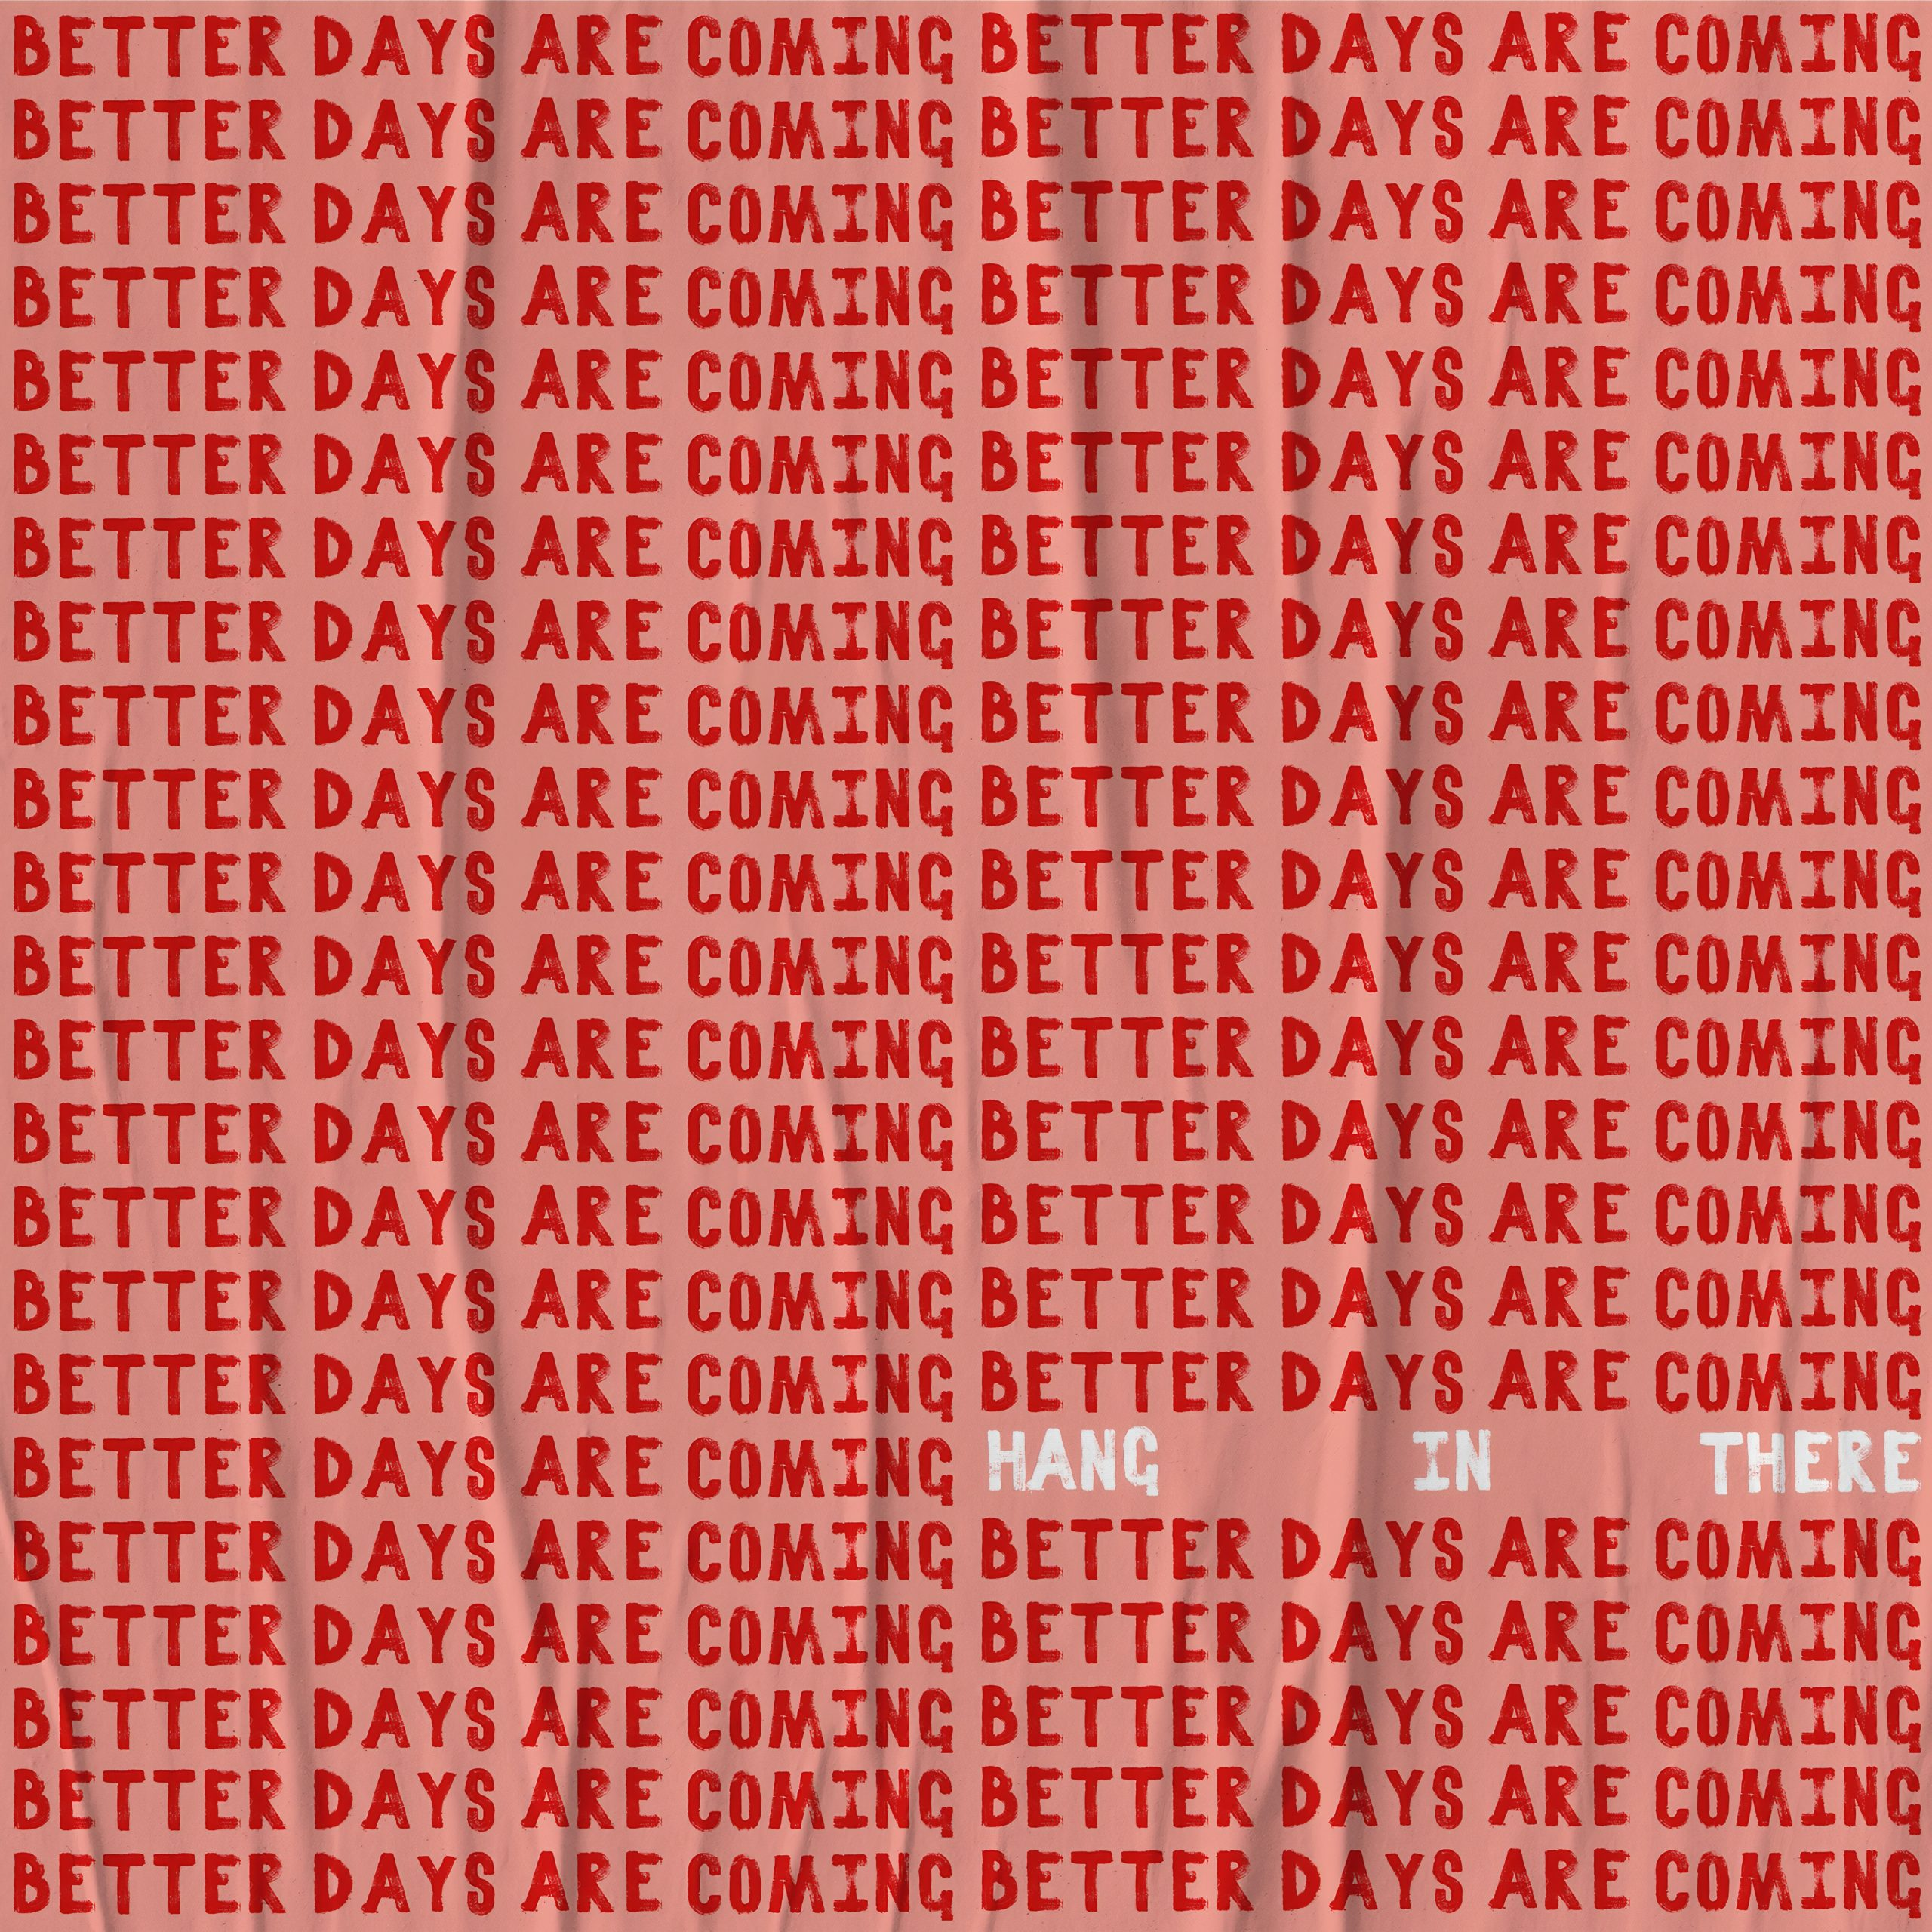 "a graphic image of the text ""better days are coming"" repeated over and over and the words ""hang in there"" superimposed near the bottom right"